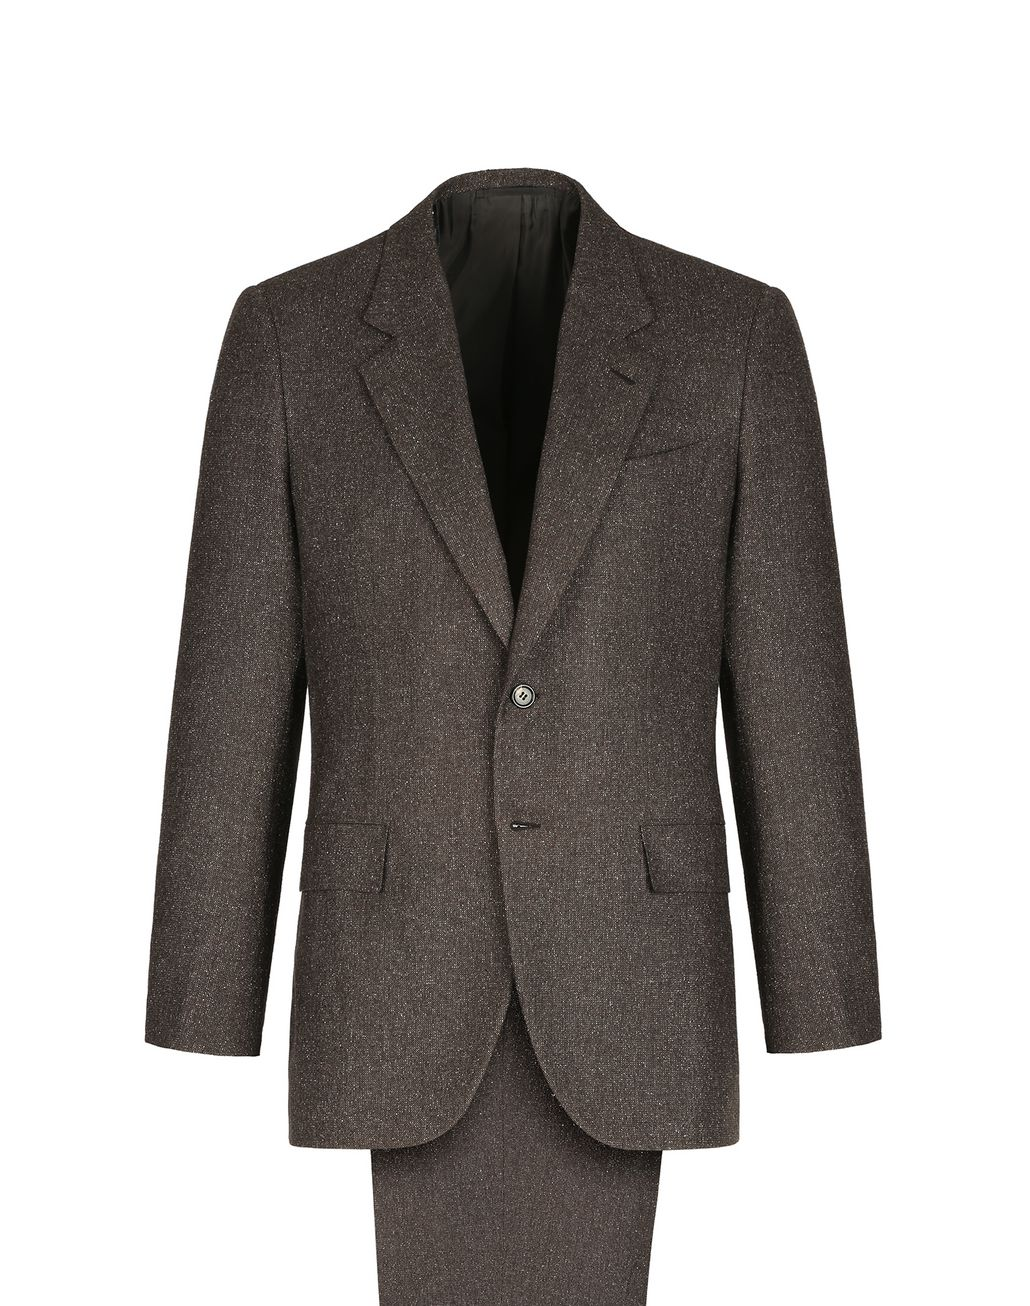 BRIONI Dunkelbrauner Anzug   Suits & Jackets [*** pickupInStoreShippingNotGuaranteed_info ***] f